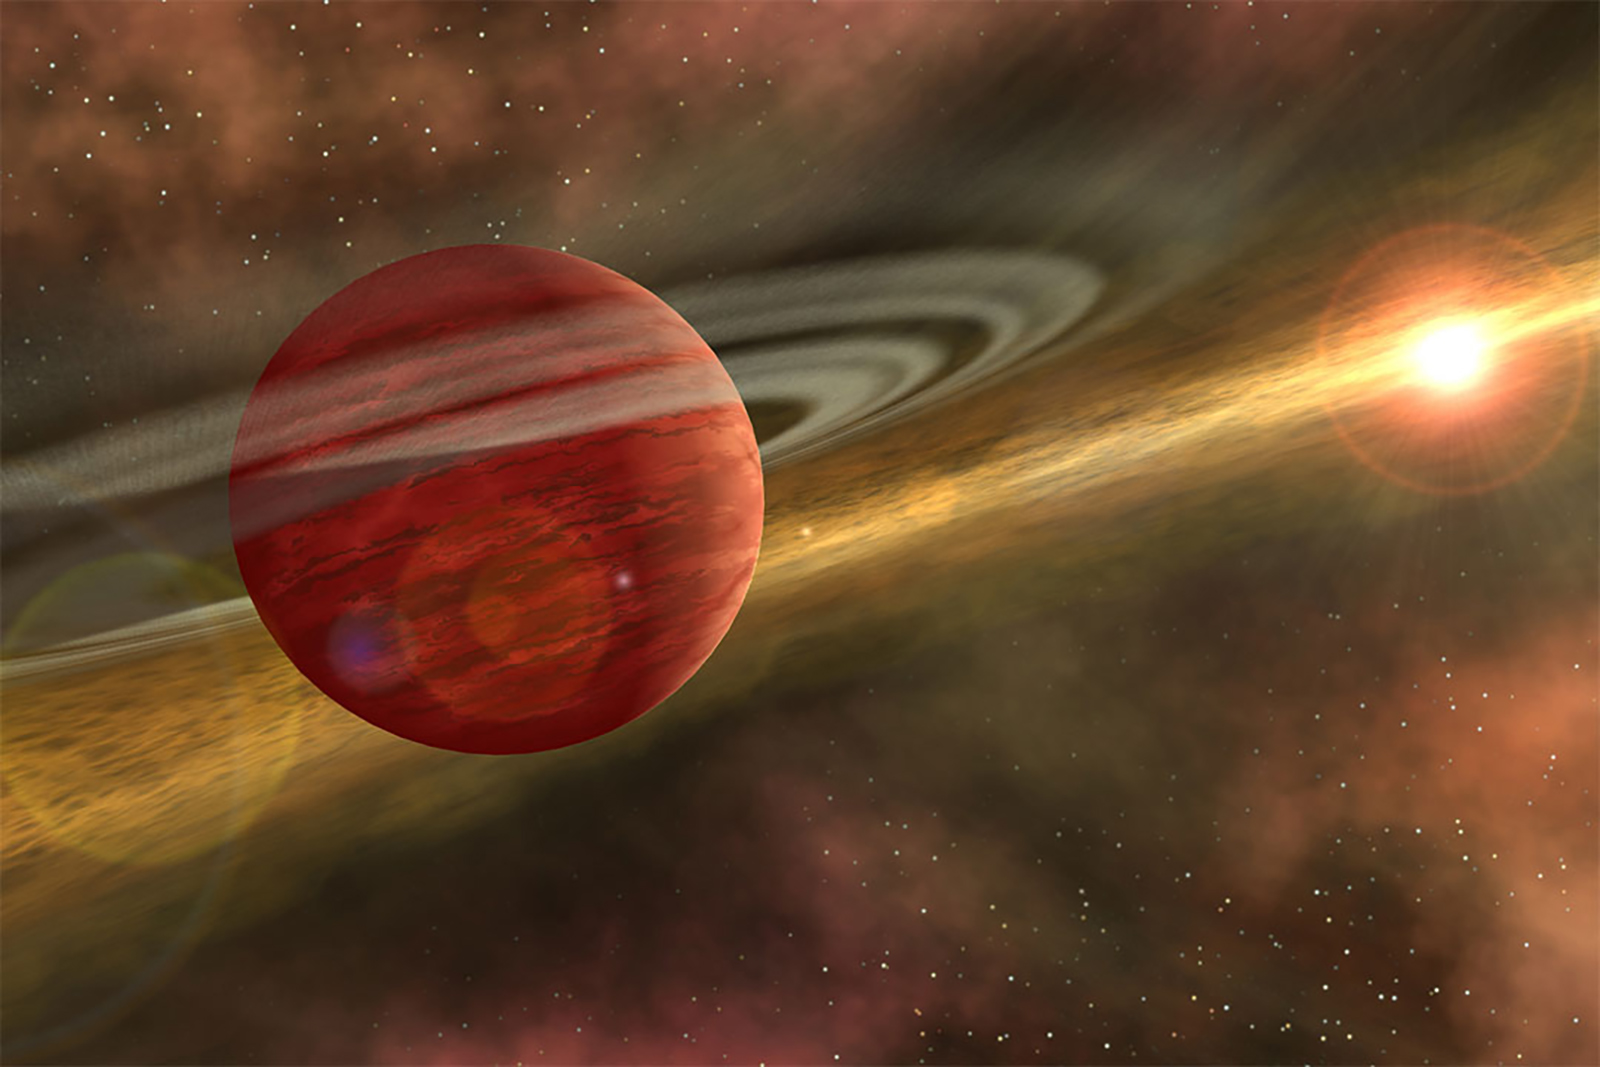 Newborn giant planet discovered 330 light-years away